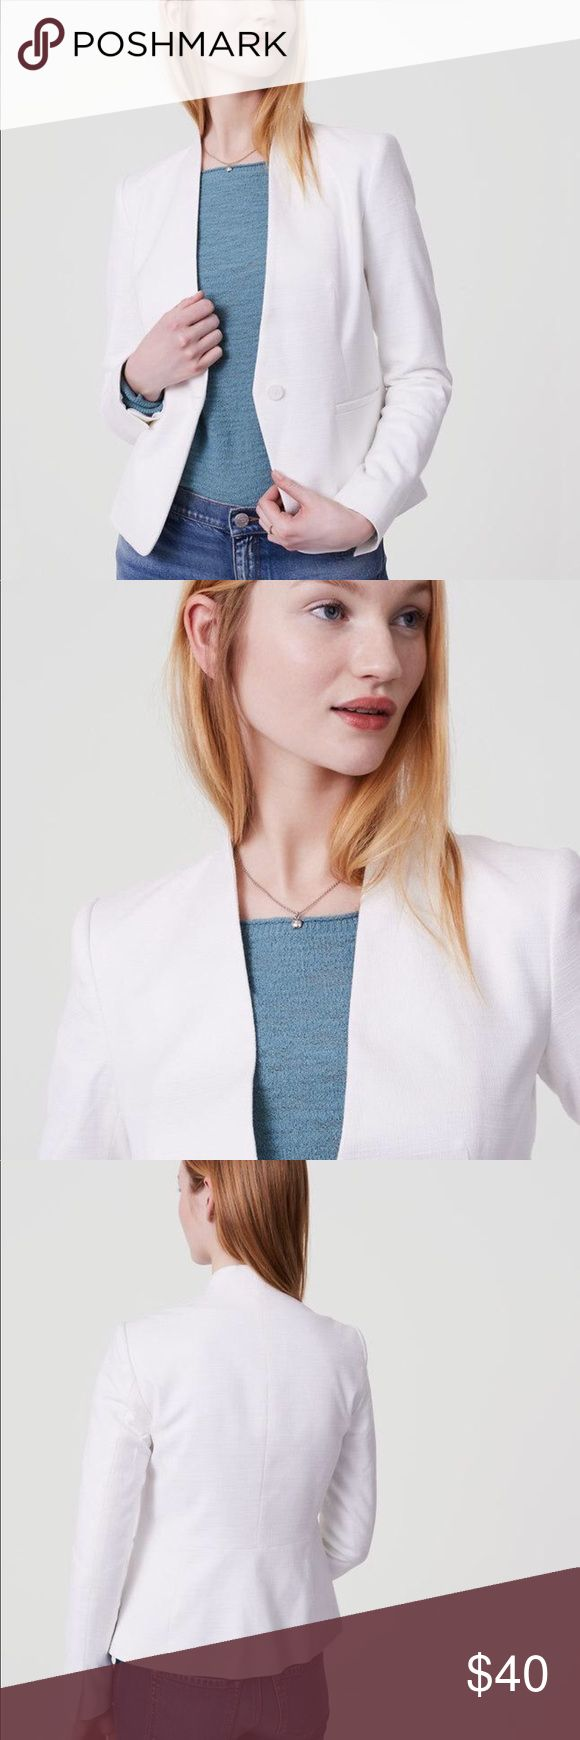 """LOFT Basketweave Collarless Blazer Only worn a few times. Good Condition. No rips, stains or tears. Has only been dry-cleaned. Moving soon so make me an offer!  Collarless, Lined Color: Moonlight Ivory One button front Front welt pockets Back peplum panel Approximate length for the Regular sizes: 23"""" LOFT Jackets & Coats Blazers"""